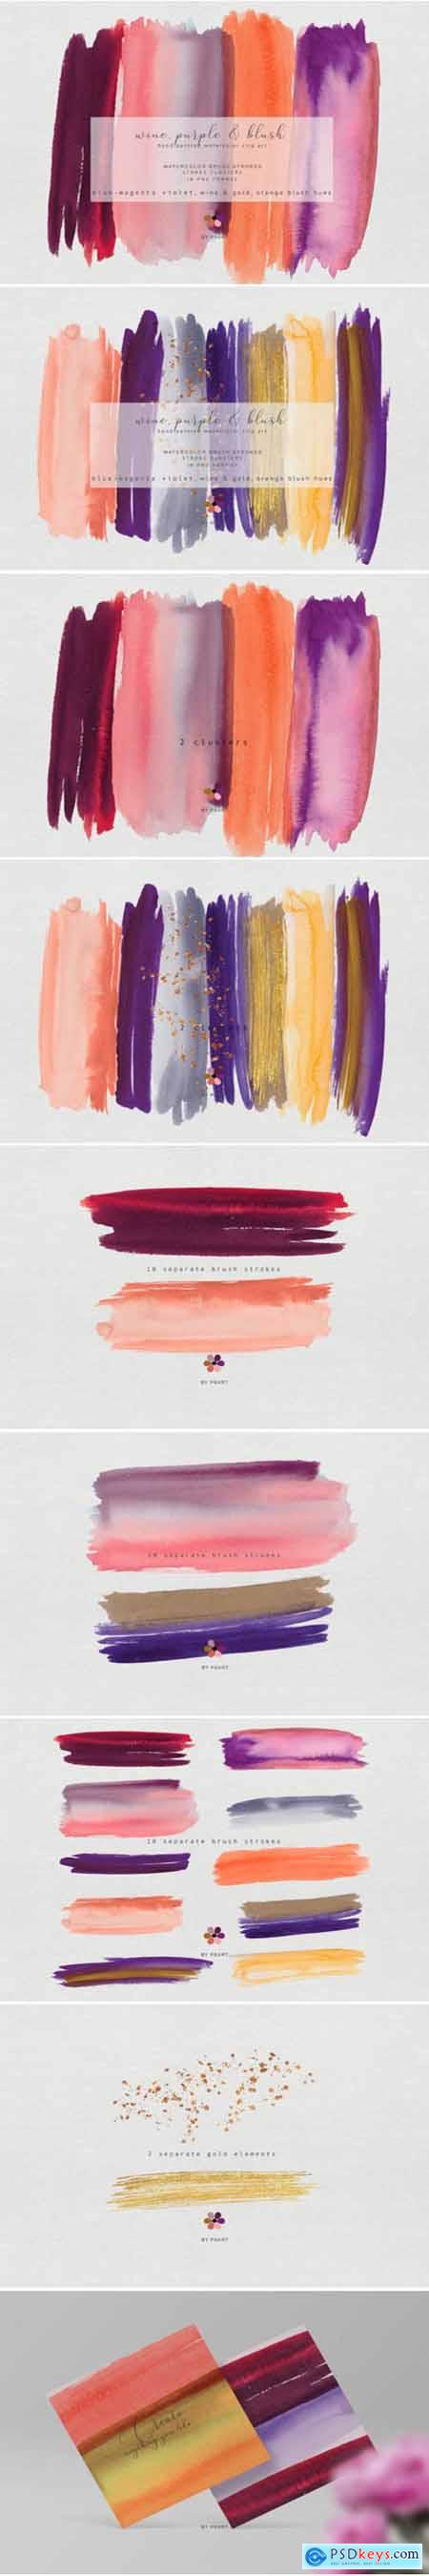 Hand Painted Watercolor Brush Strokes 1743290